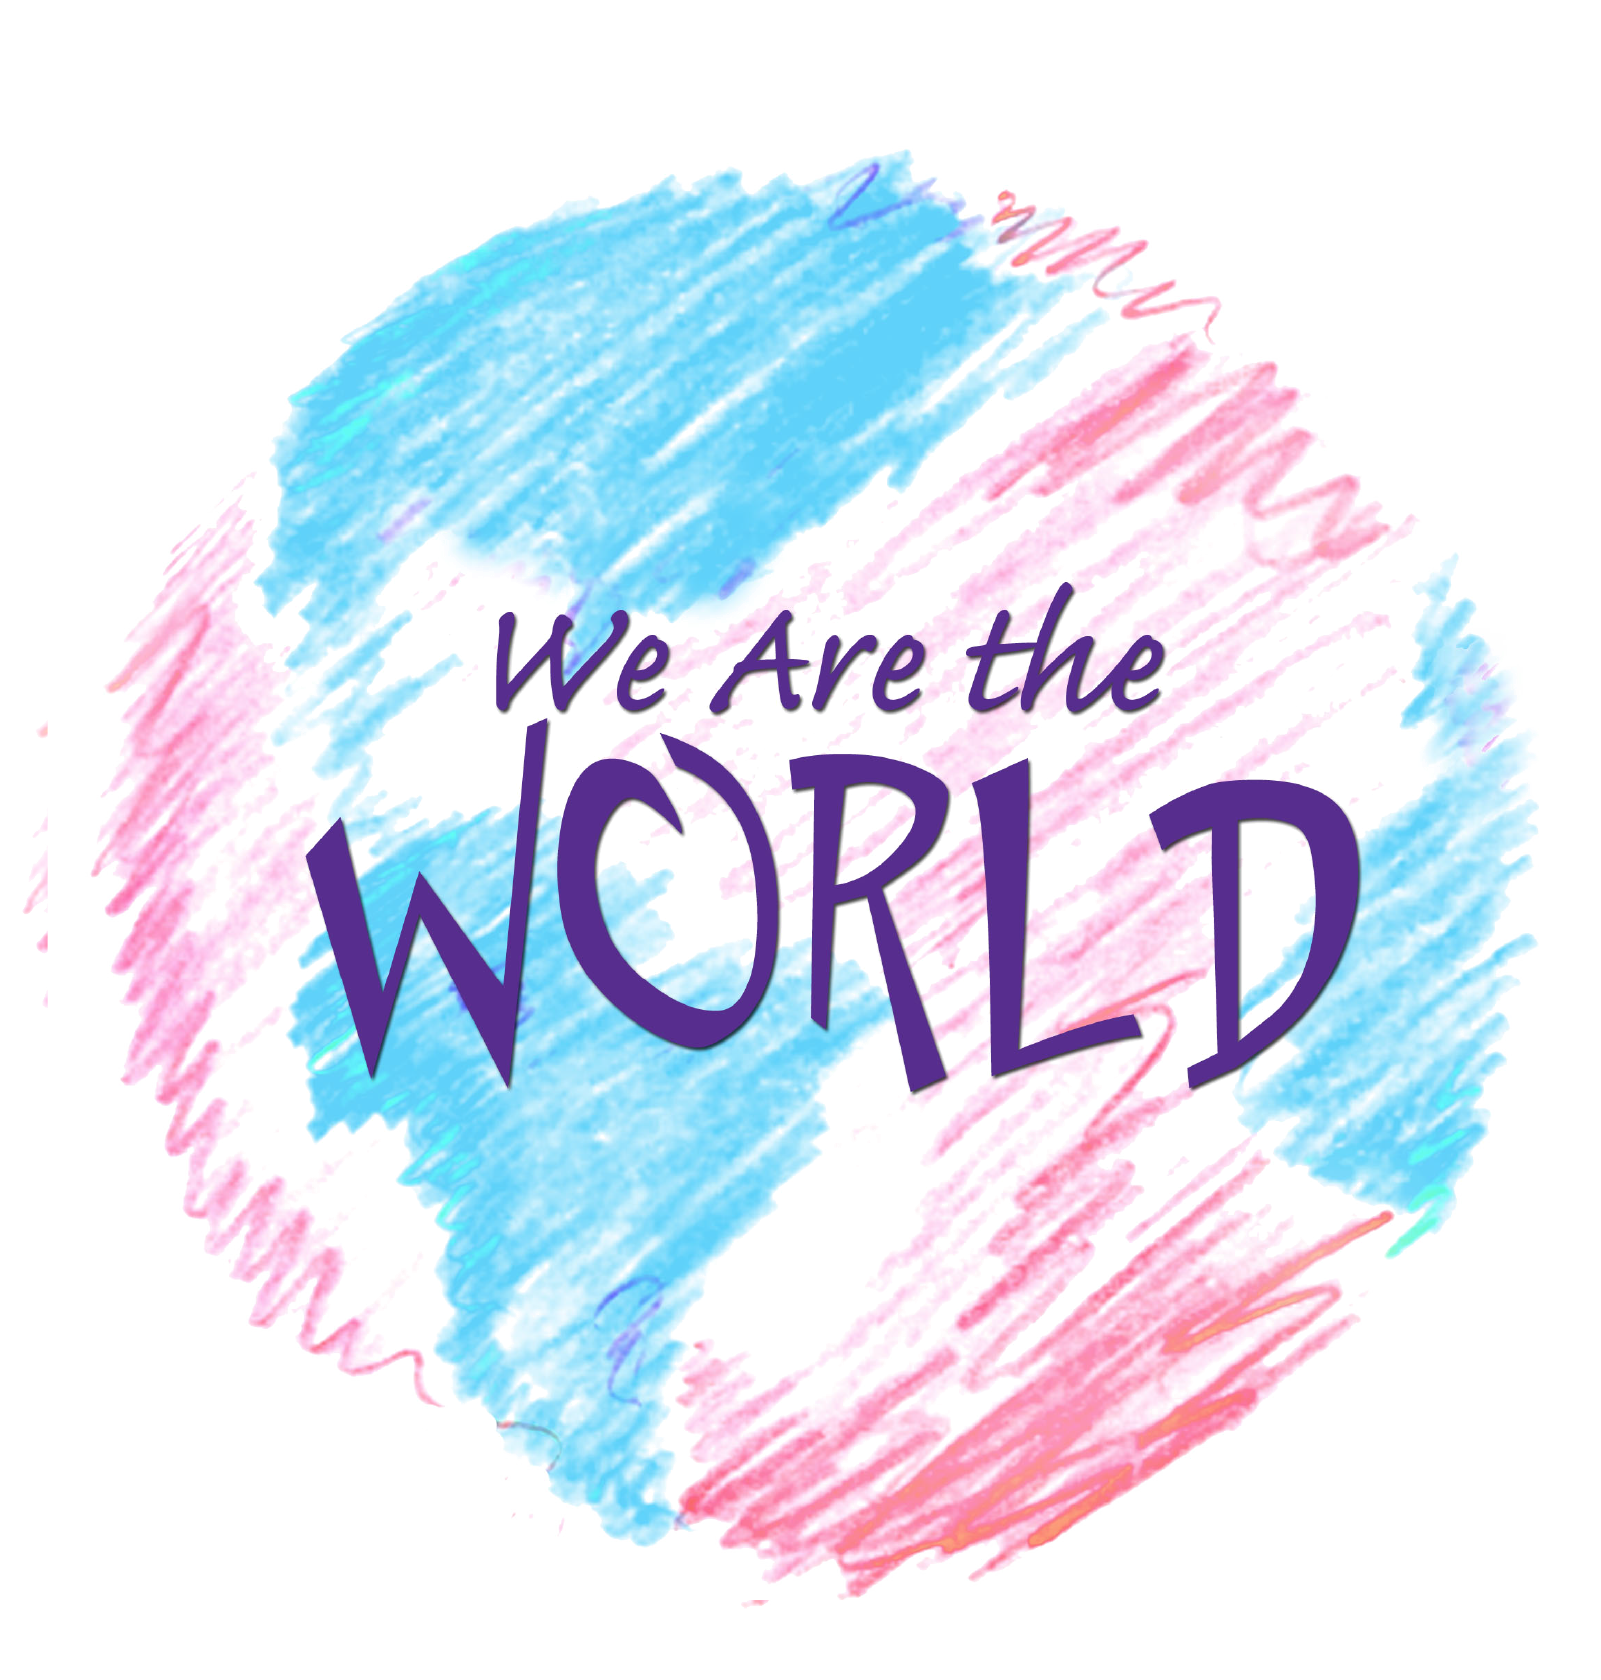 We Are the World Curriculum 00022